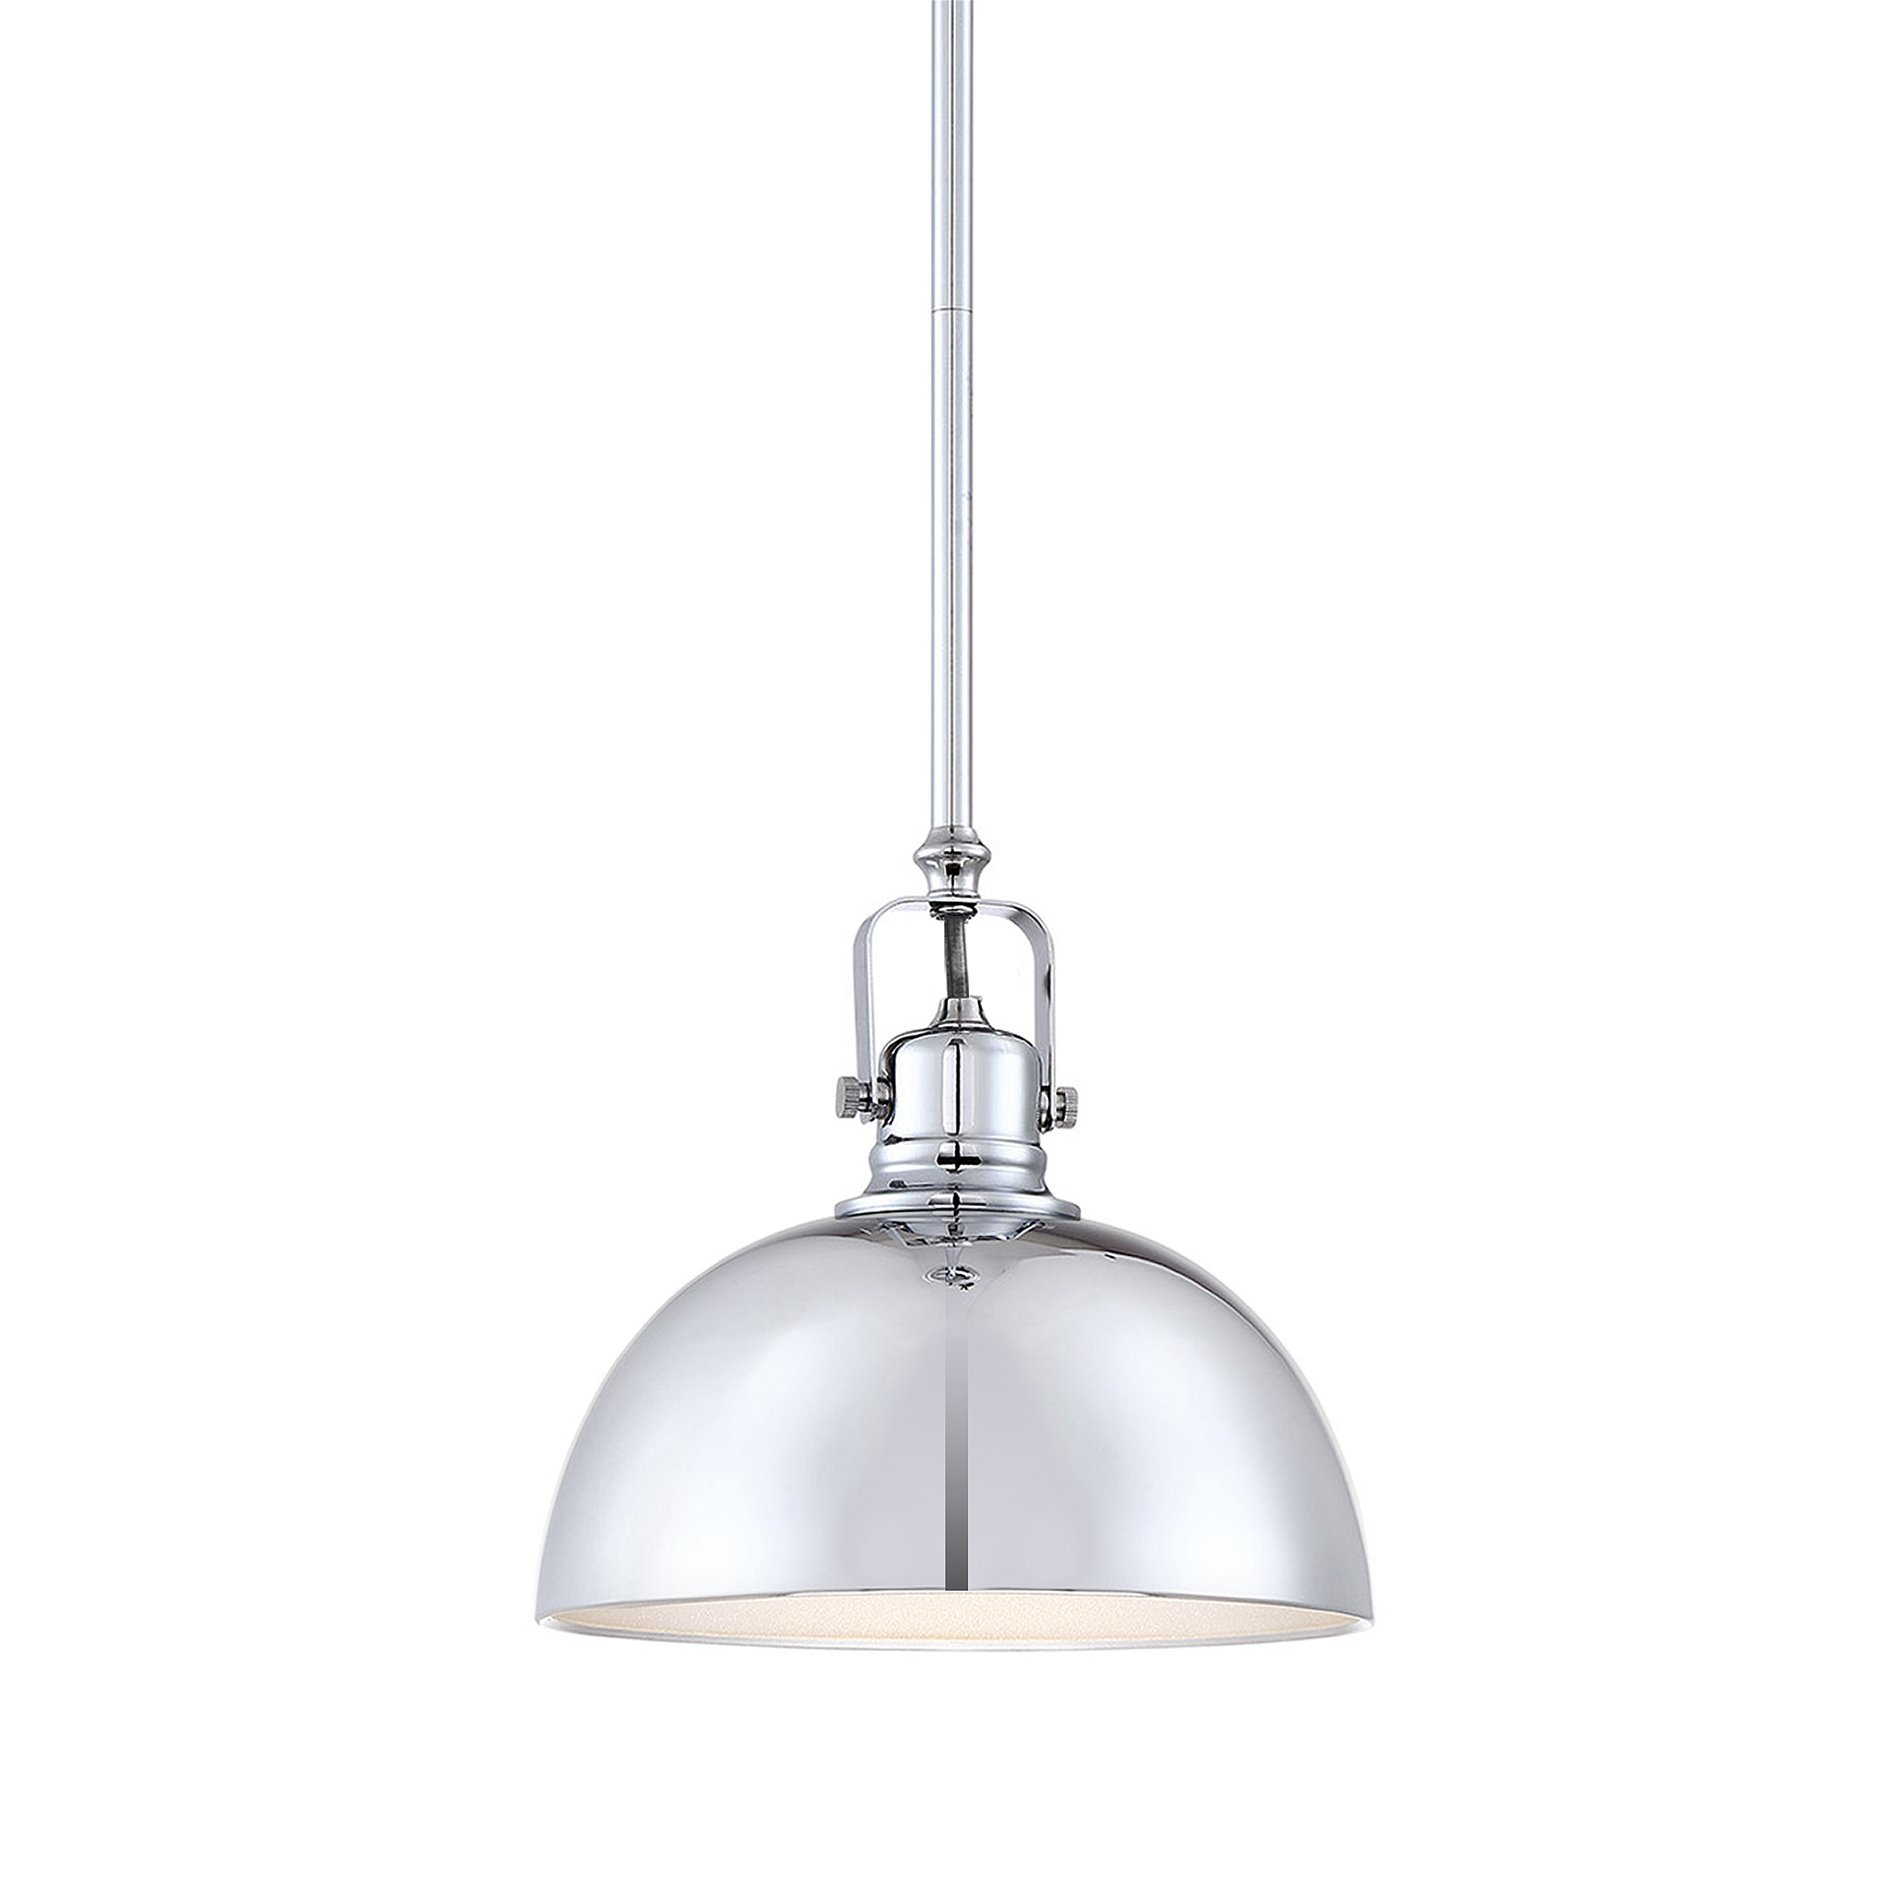 Revel/Kira Home Belle 9'' Contemporary 1-Light Pendant Light, Adjustable Length + Shade Swivel Joint, Chrome Finish by Kira Home